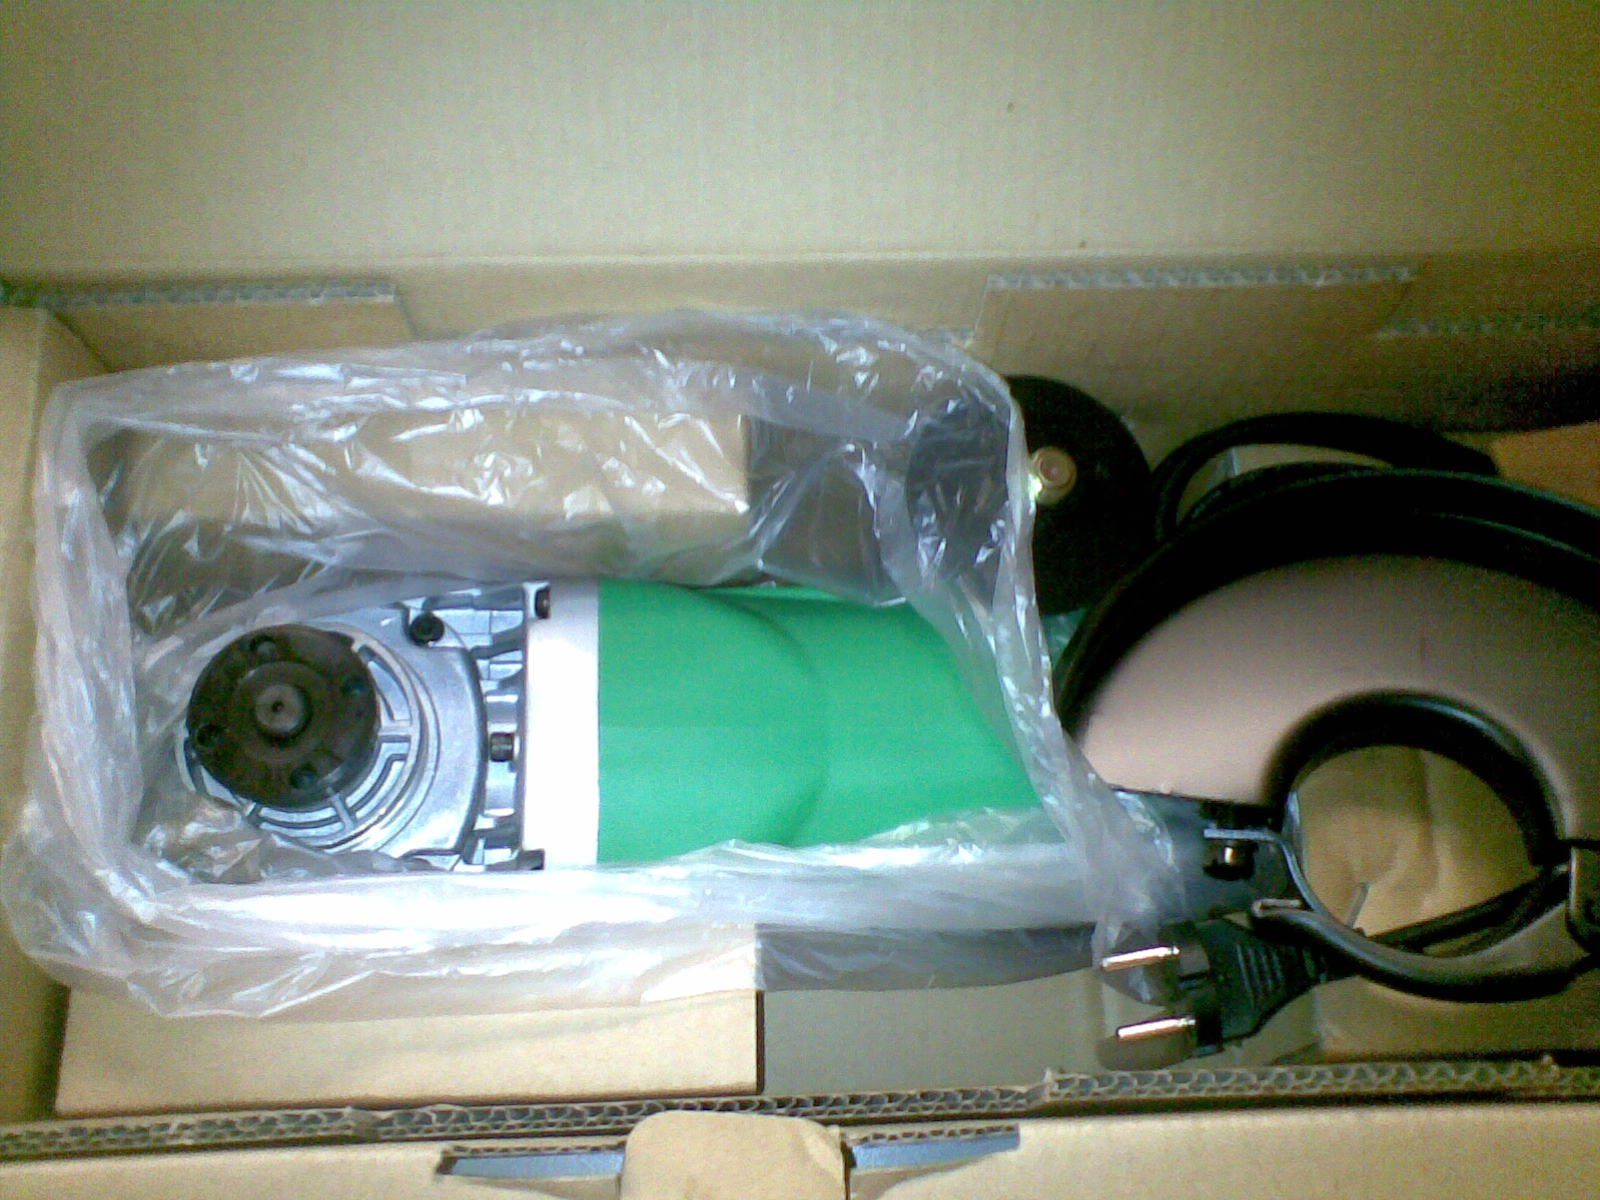 FOR SALE: Selling brand new Bosch 7